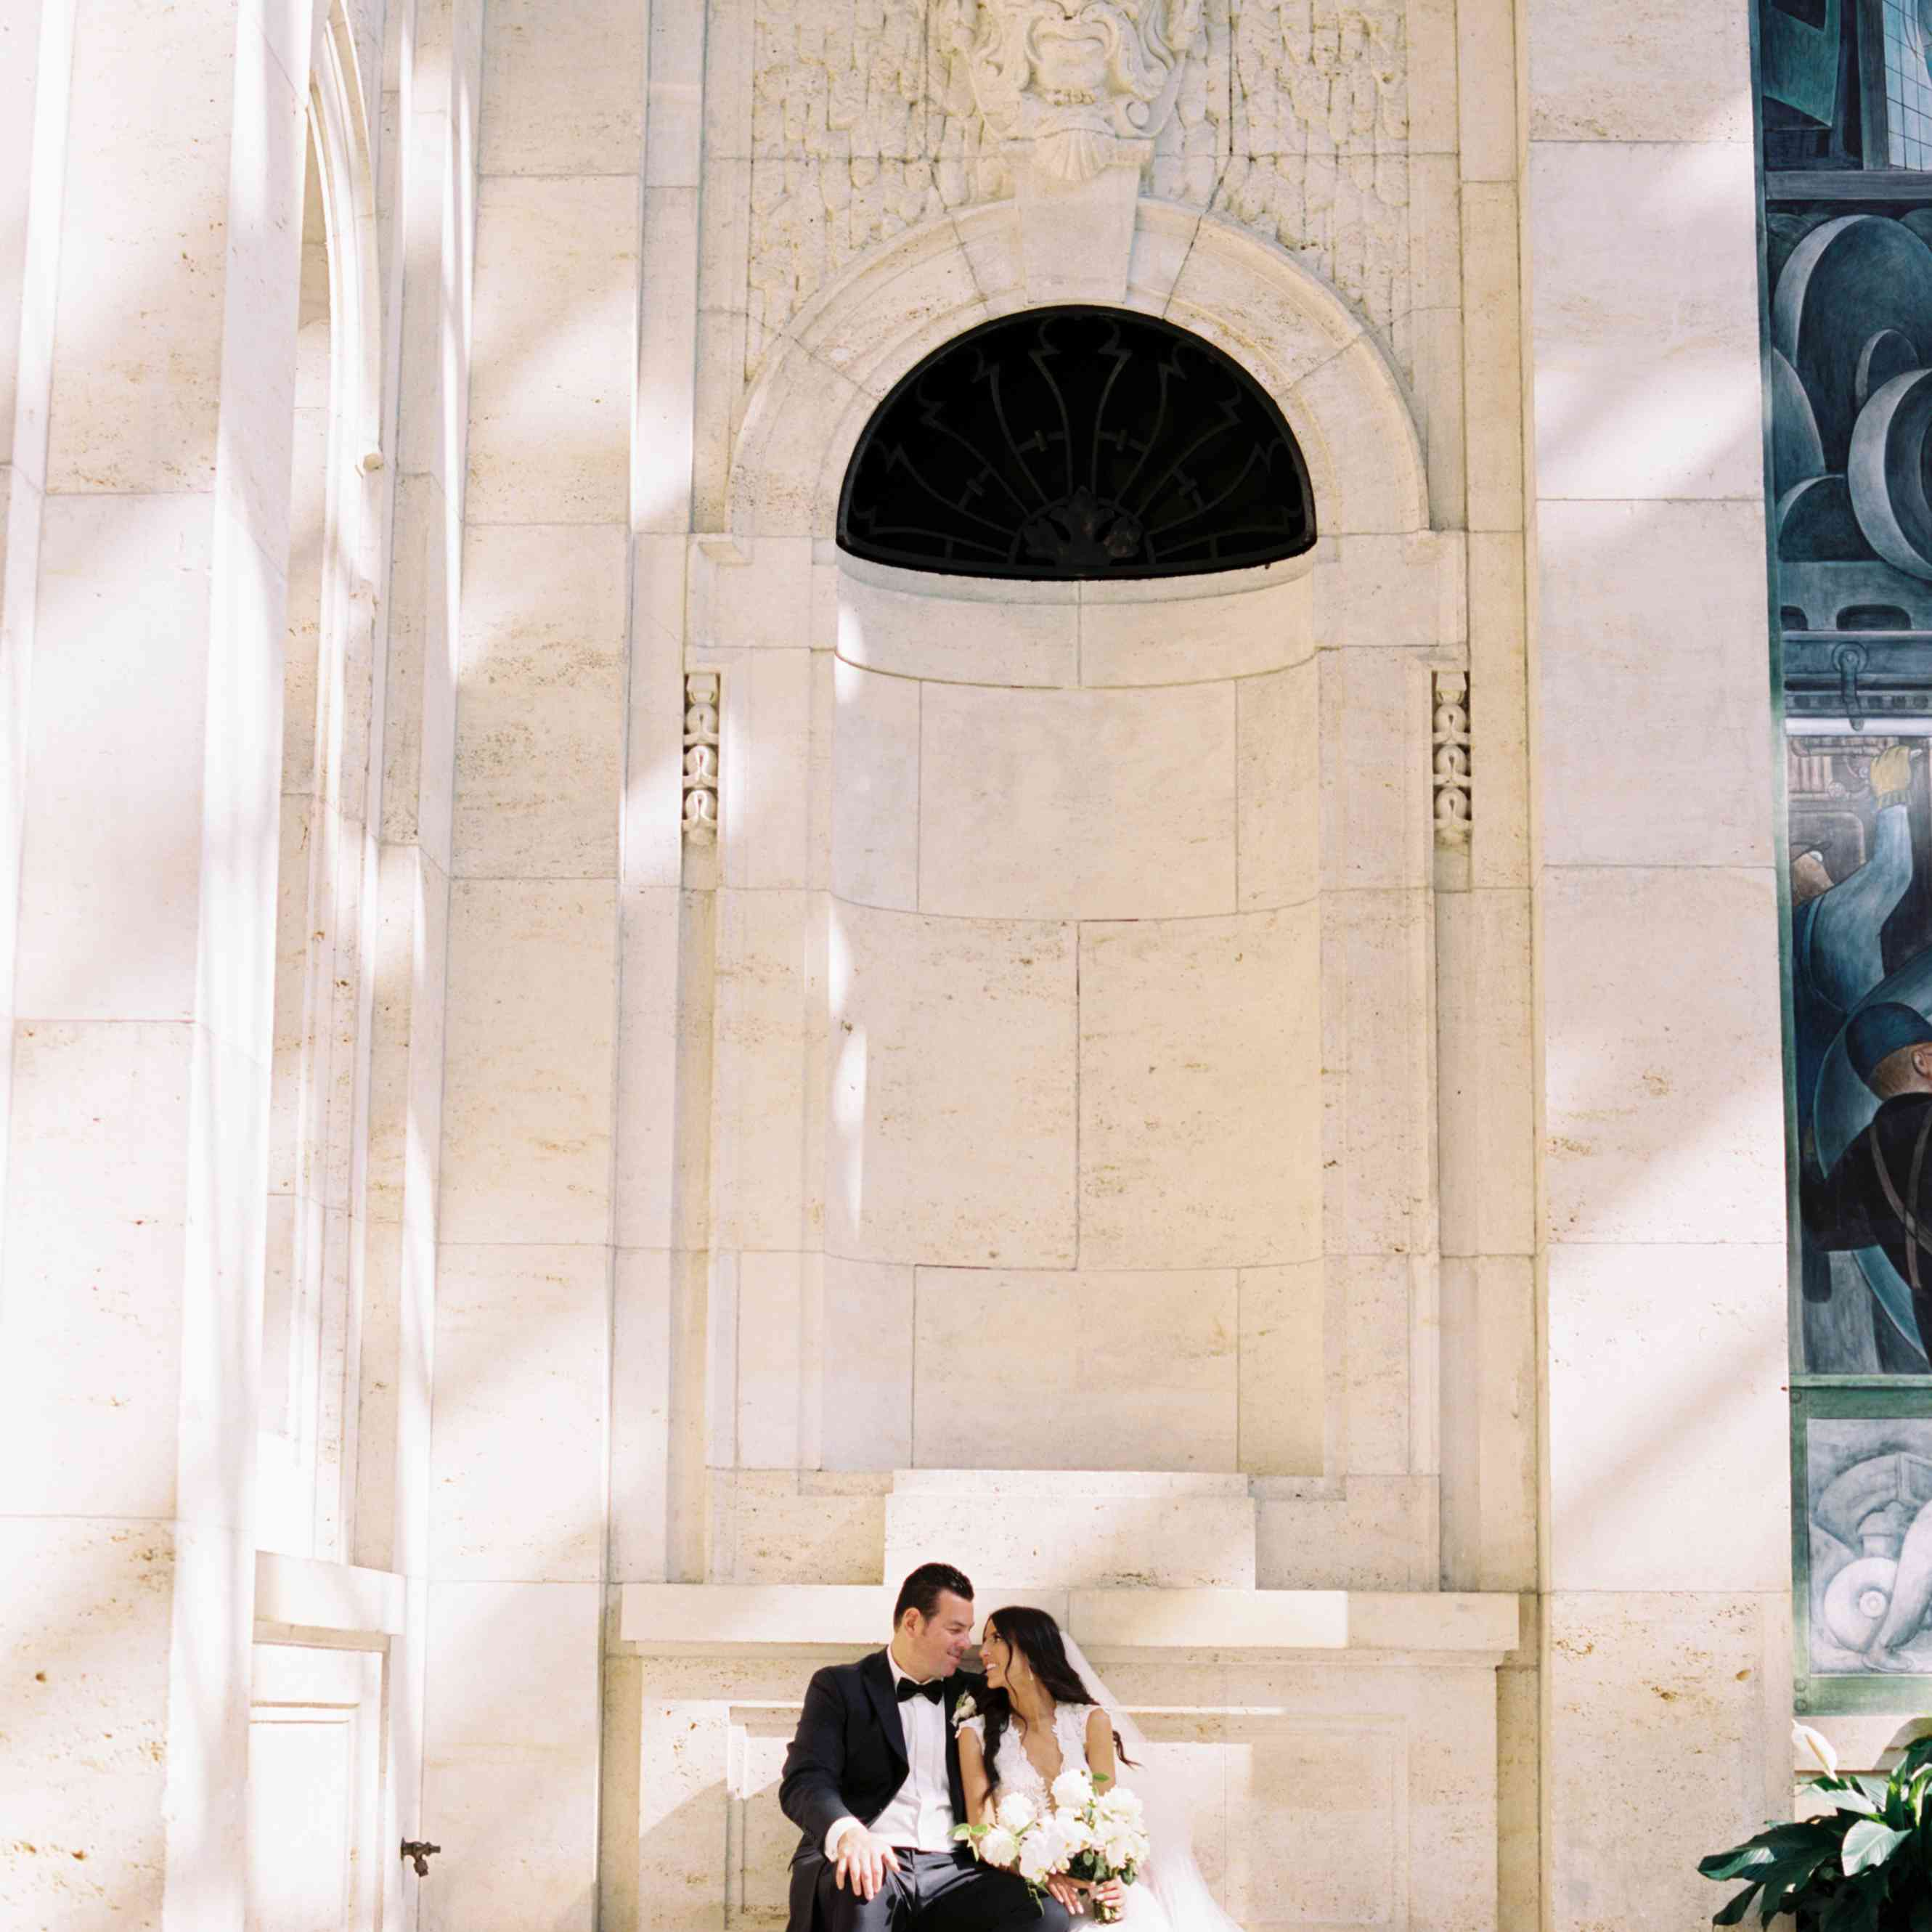 The newlyweds pose for portraits